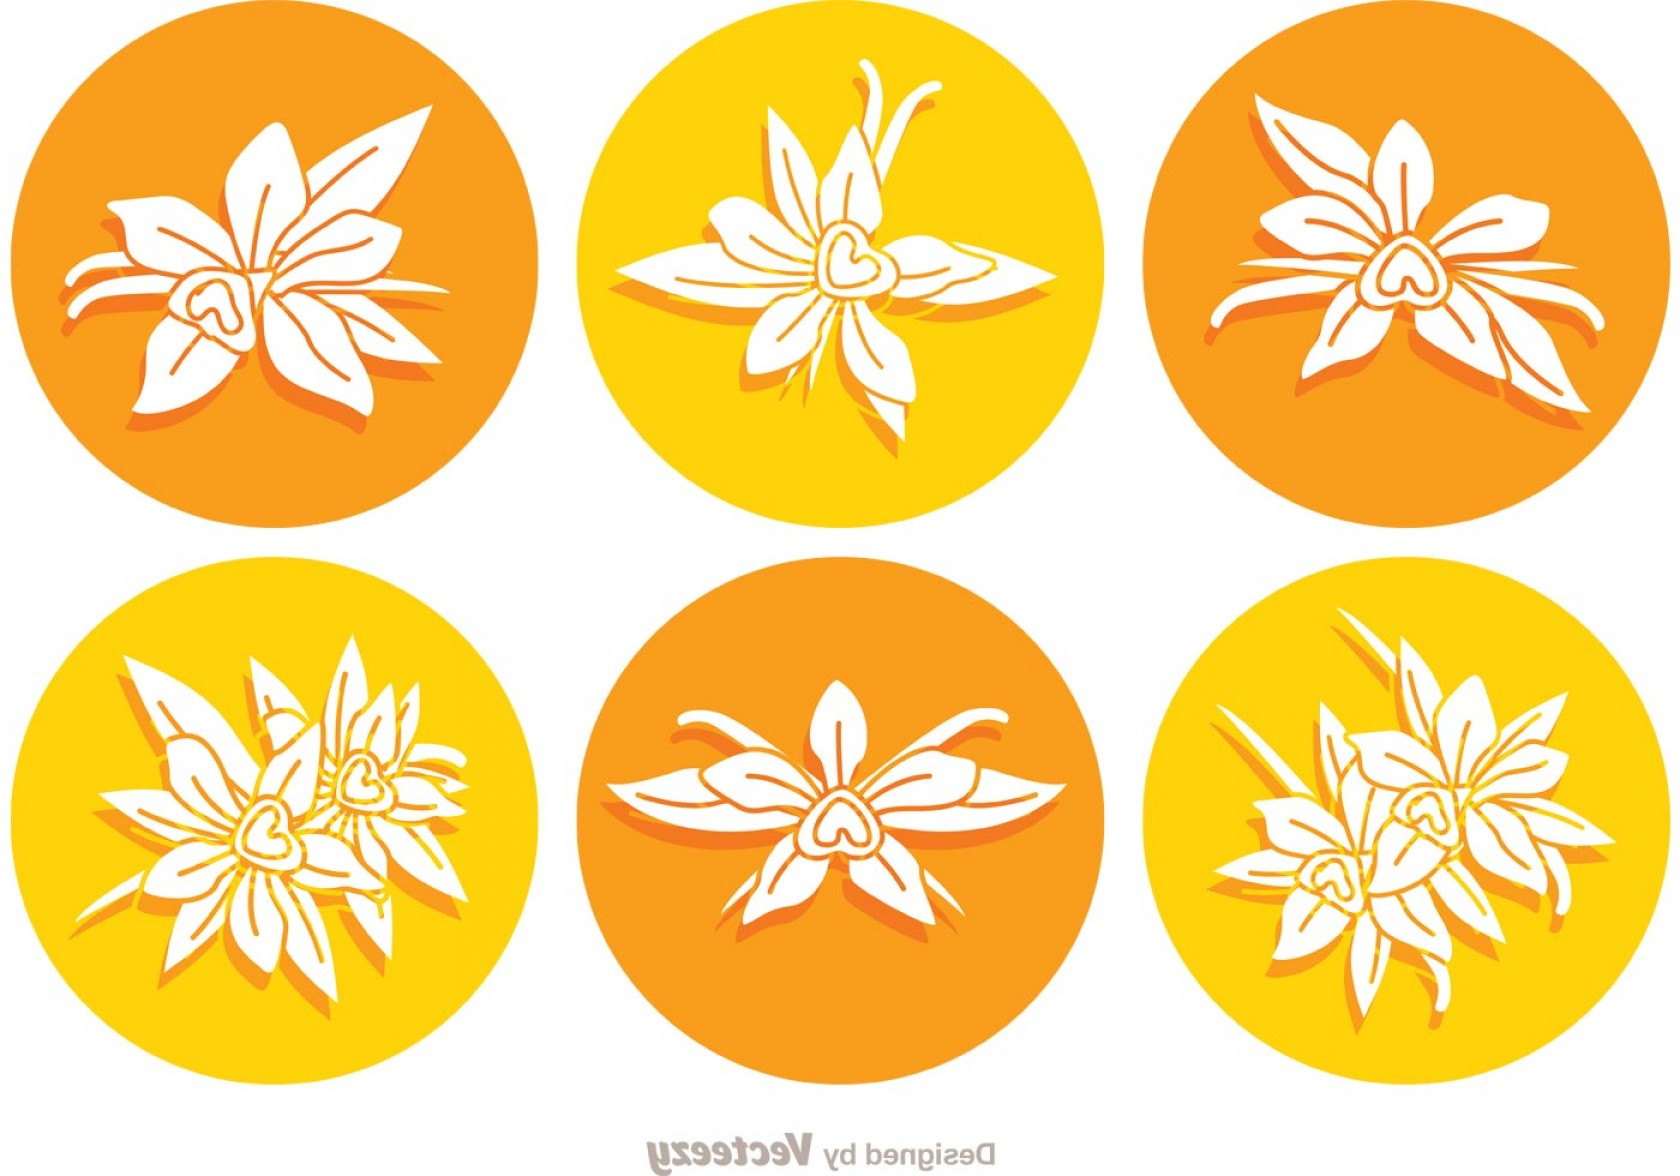 Icon Of Flower Vectors: Vanilla Flower Round Icon Vectors